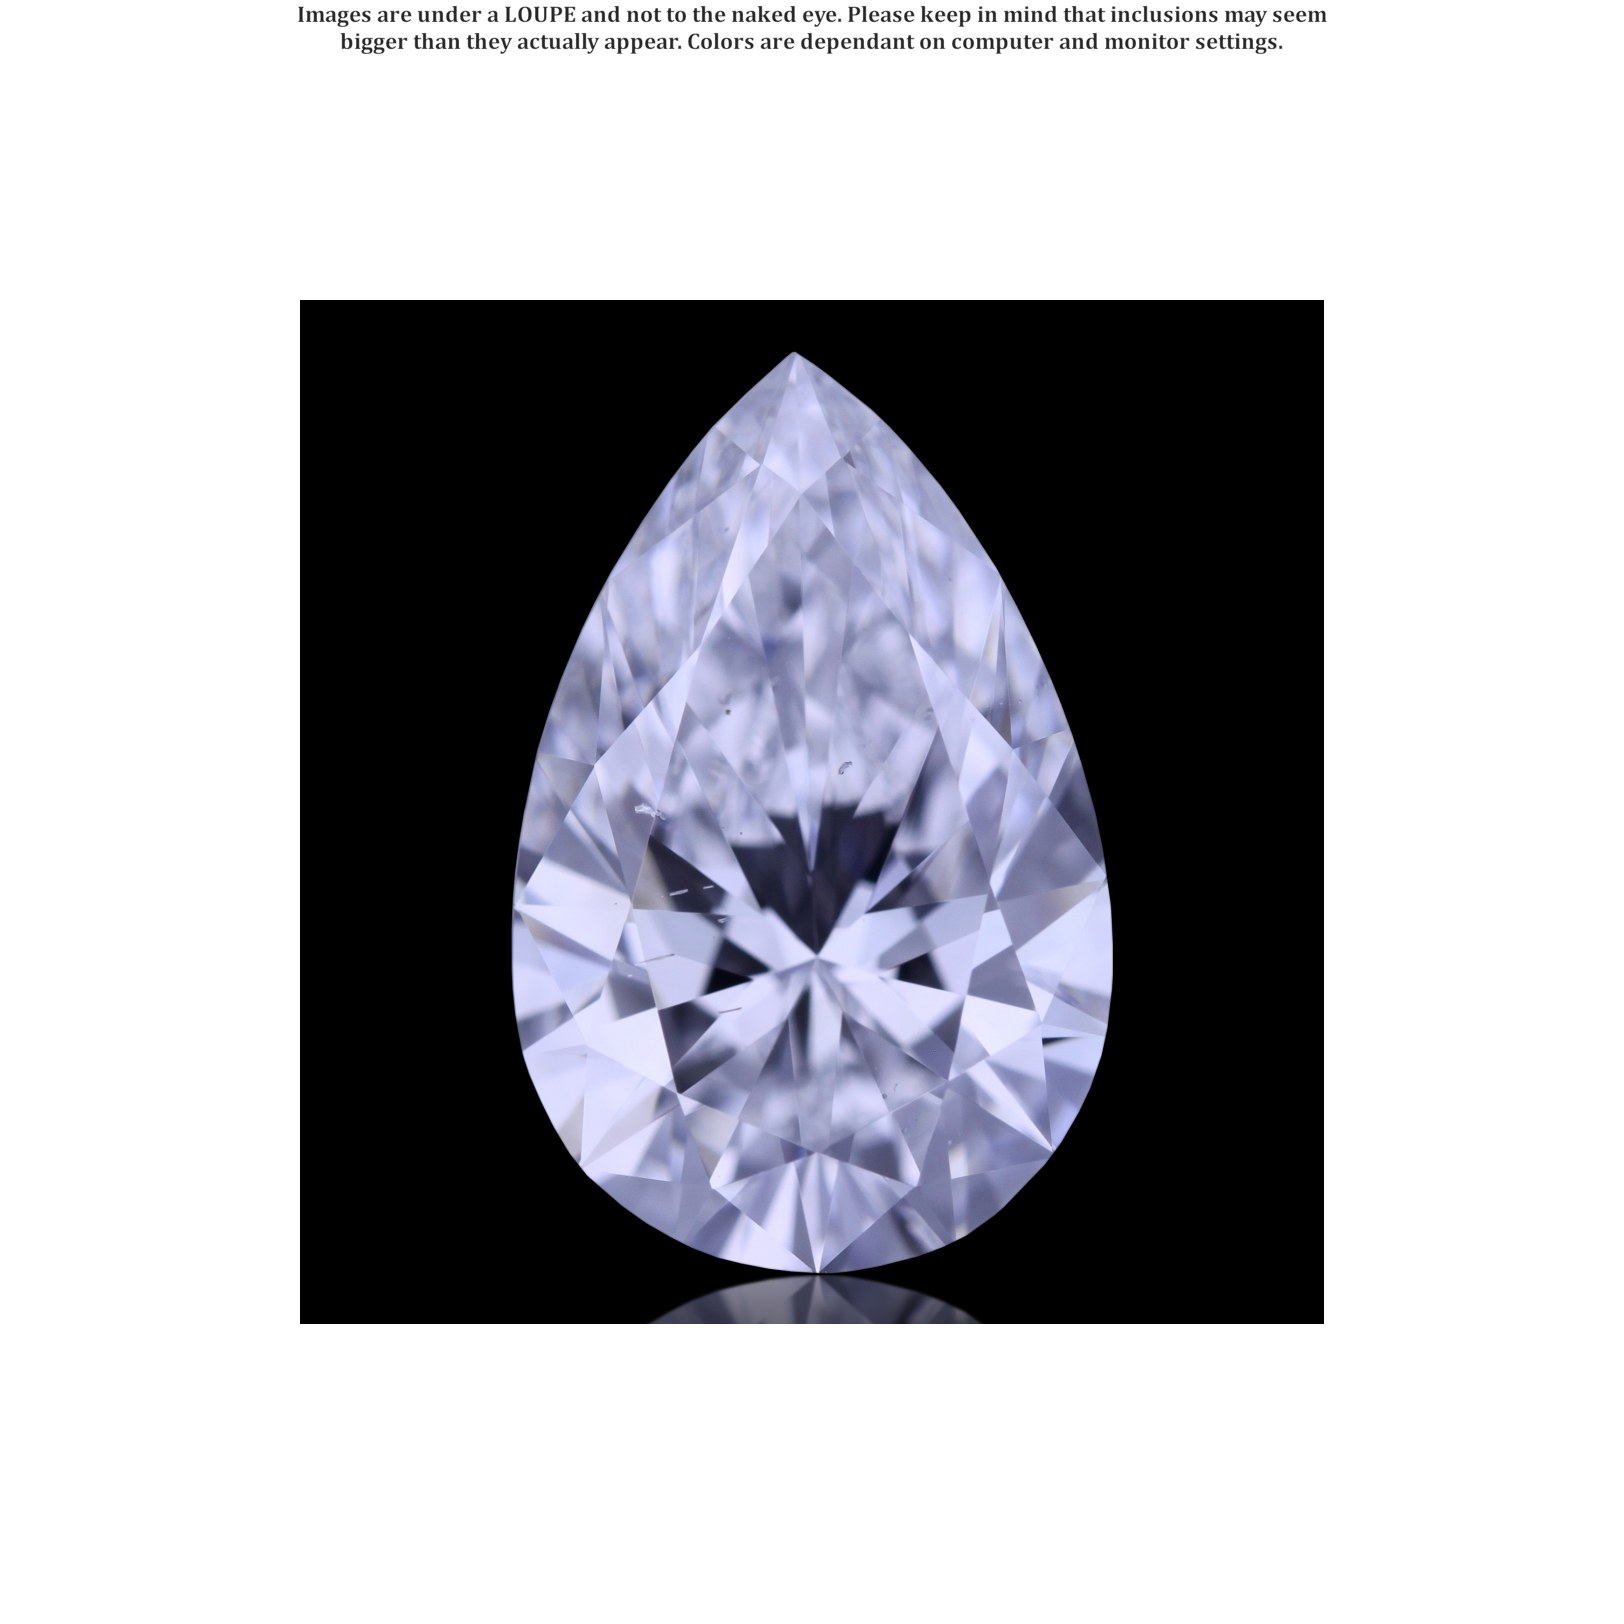 Arthur's Jewelry - Diamond Image - .00625